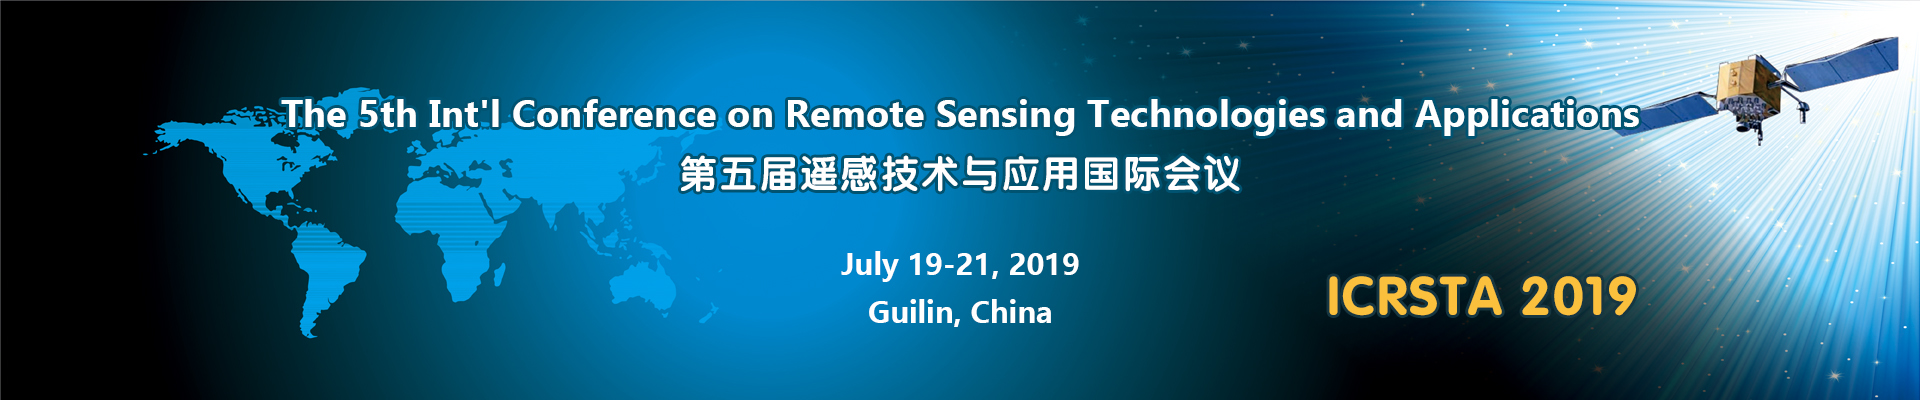 The 5th Int'l Conference on Remote Sensing Technologies and Applications (ICRSTA 2019), Guilin, Guangxi, China